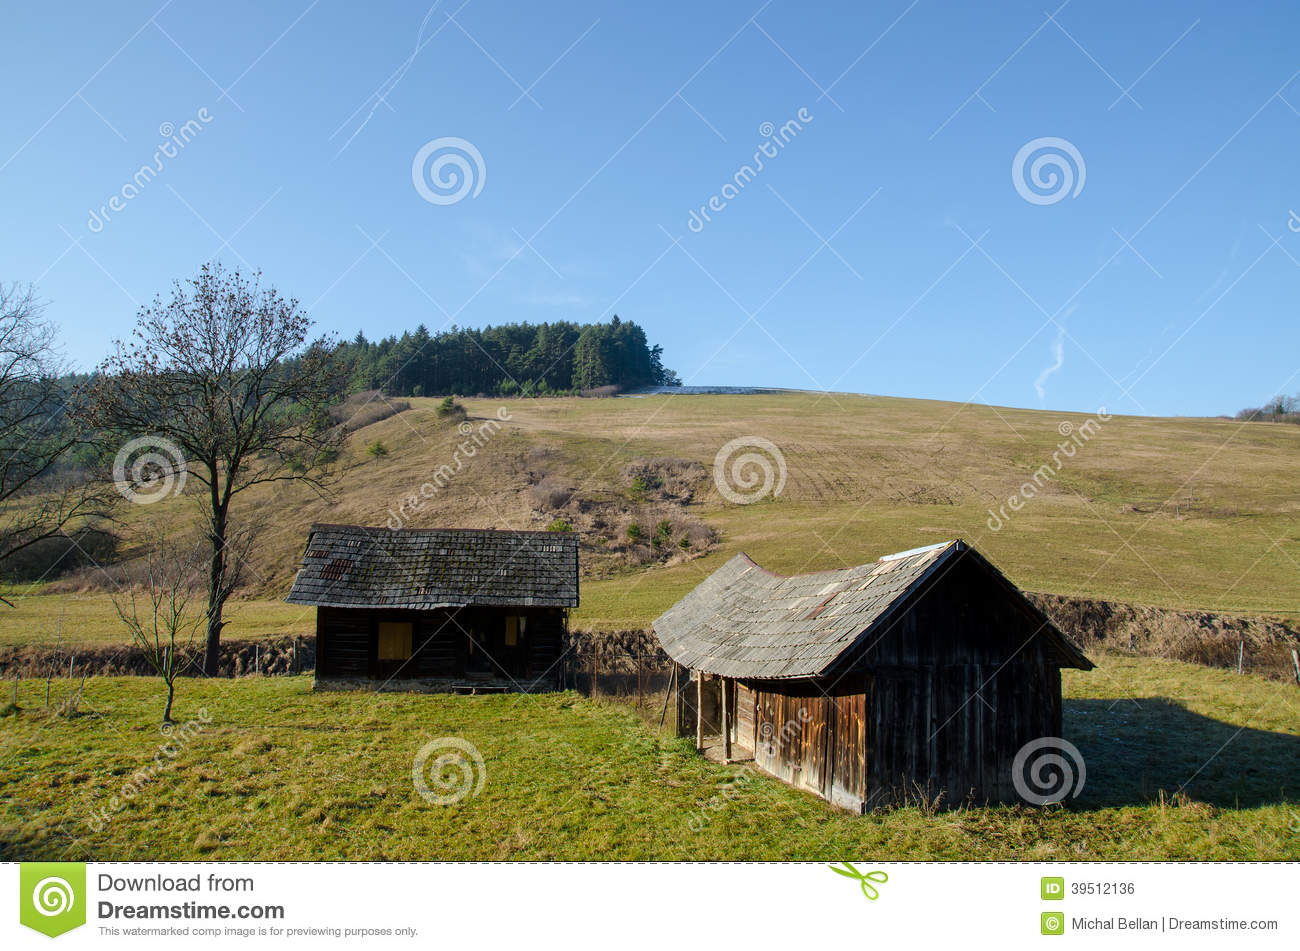 Old wooden house on sunny meadow landscape